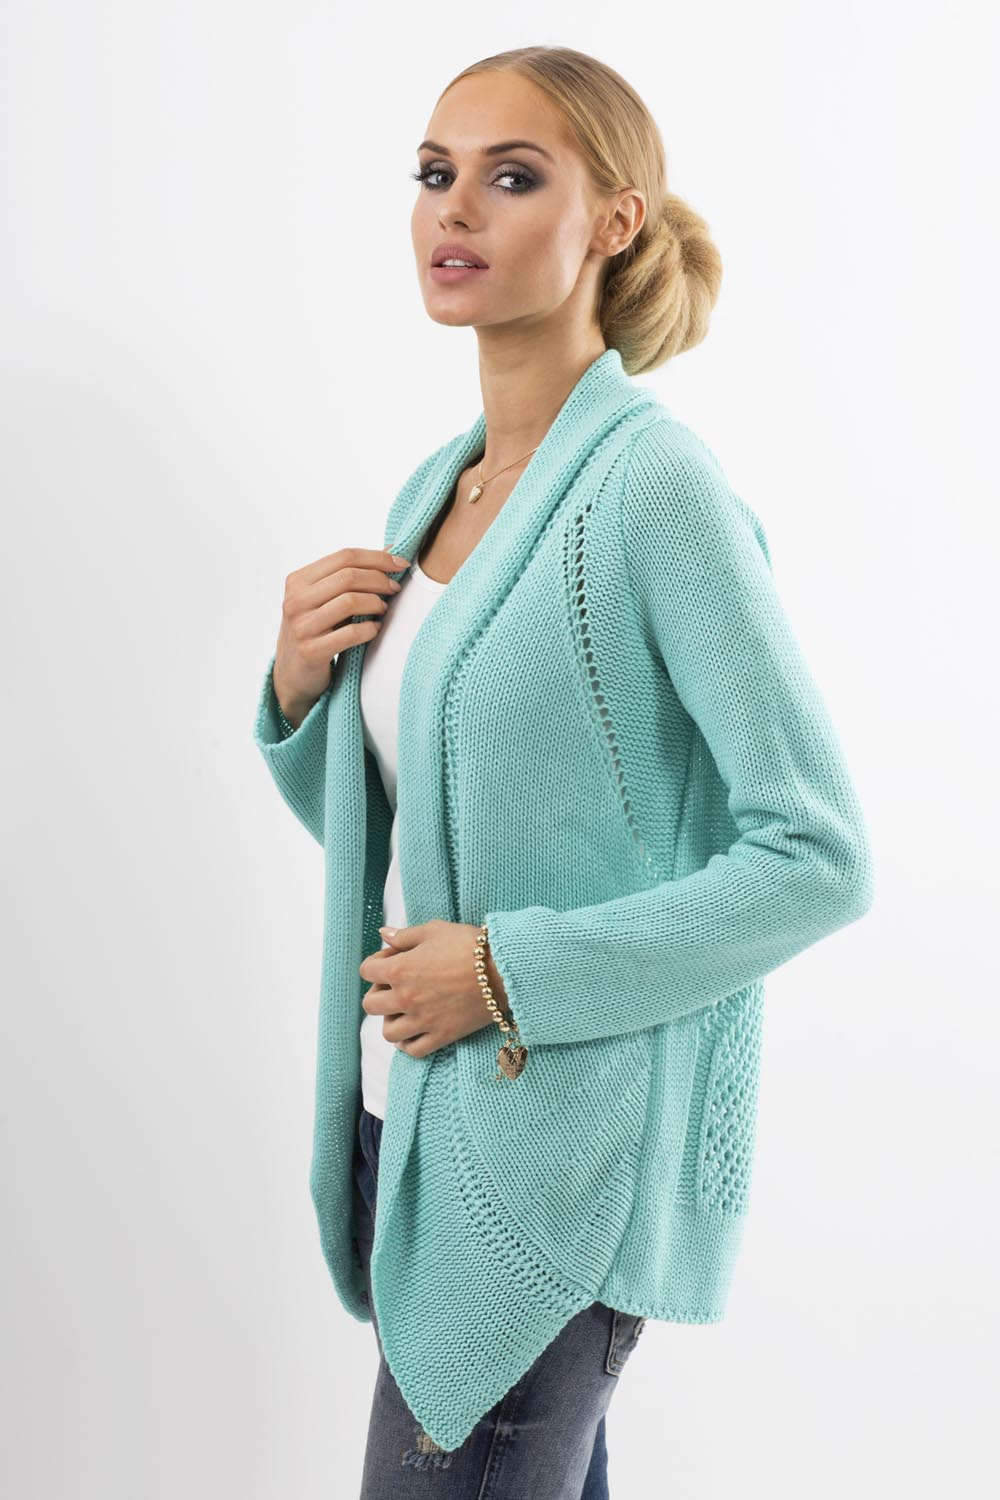 Mint Shawl Collar Ladies Cardigan with Eyelet Knit Pattern